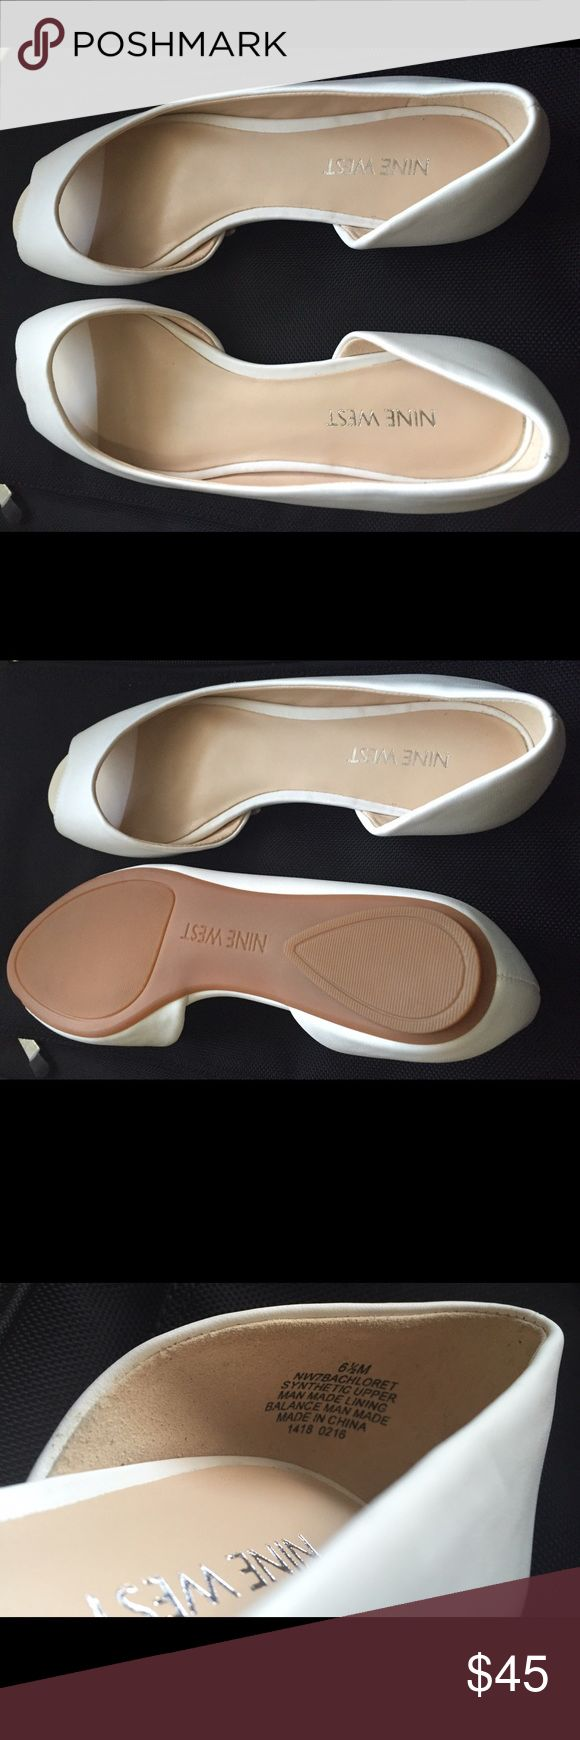 Nine West Women's Ballet Flat (US Size 6.5) condition: New Brand: Nine West Fastening: Slip On	 Style: Slides Heel Height: Flat (0 to 1/2 in.)	 US Shoe Size (Women's): 6.5 Country/Region of Manufacture: China	 Width: Medium (B, M) Material:	Leather	 Color: White  Leather Imported Synthetic sole Leather upper Synthetic sole Faux leather lining Cushioned footbed  BRAND NEW & AUTHENTIC ITEM!! Nine West Shoes Flats & Loafers